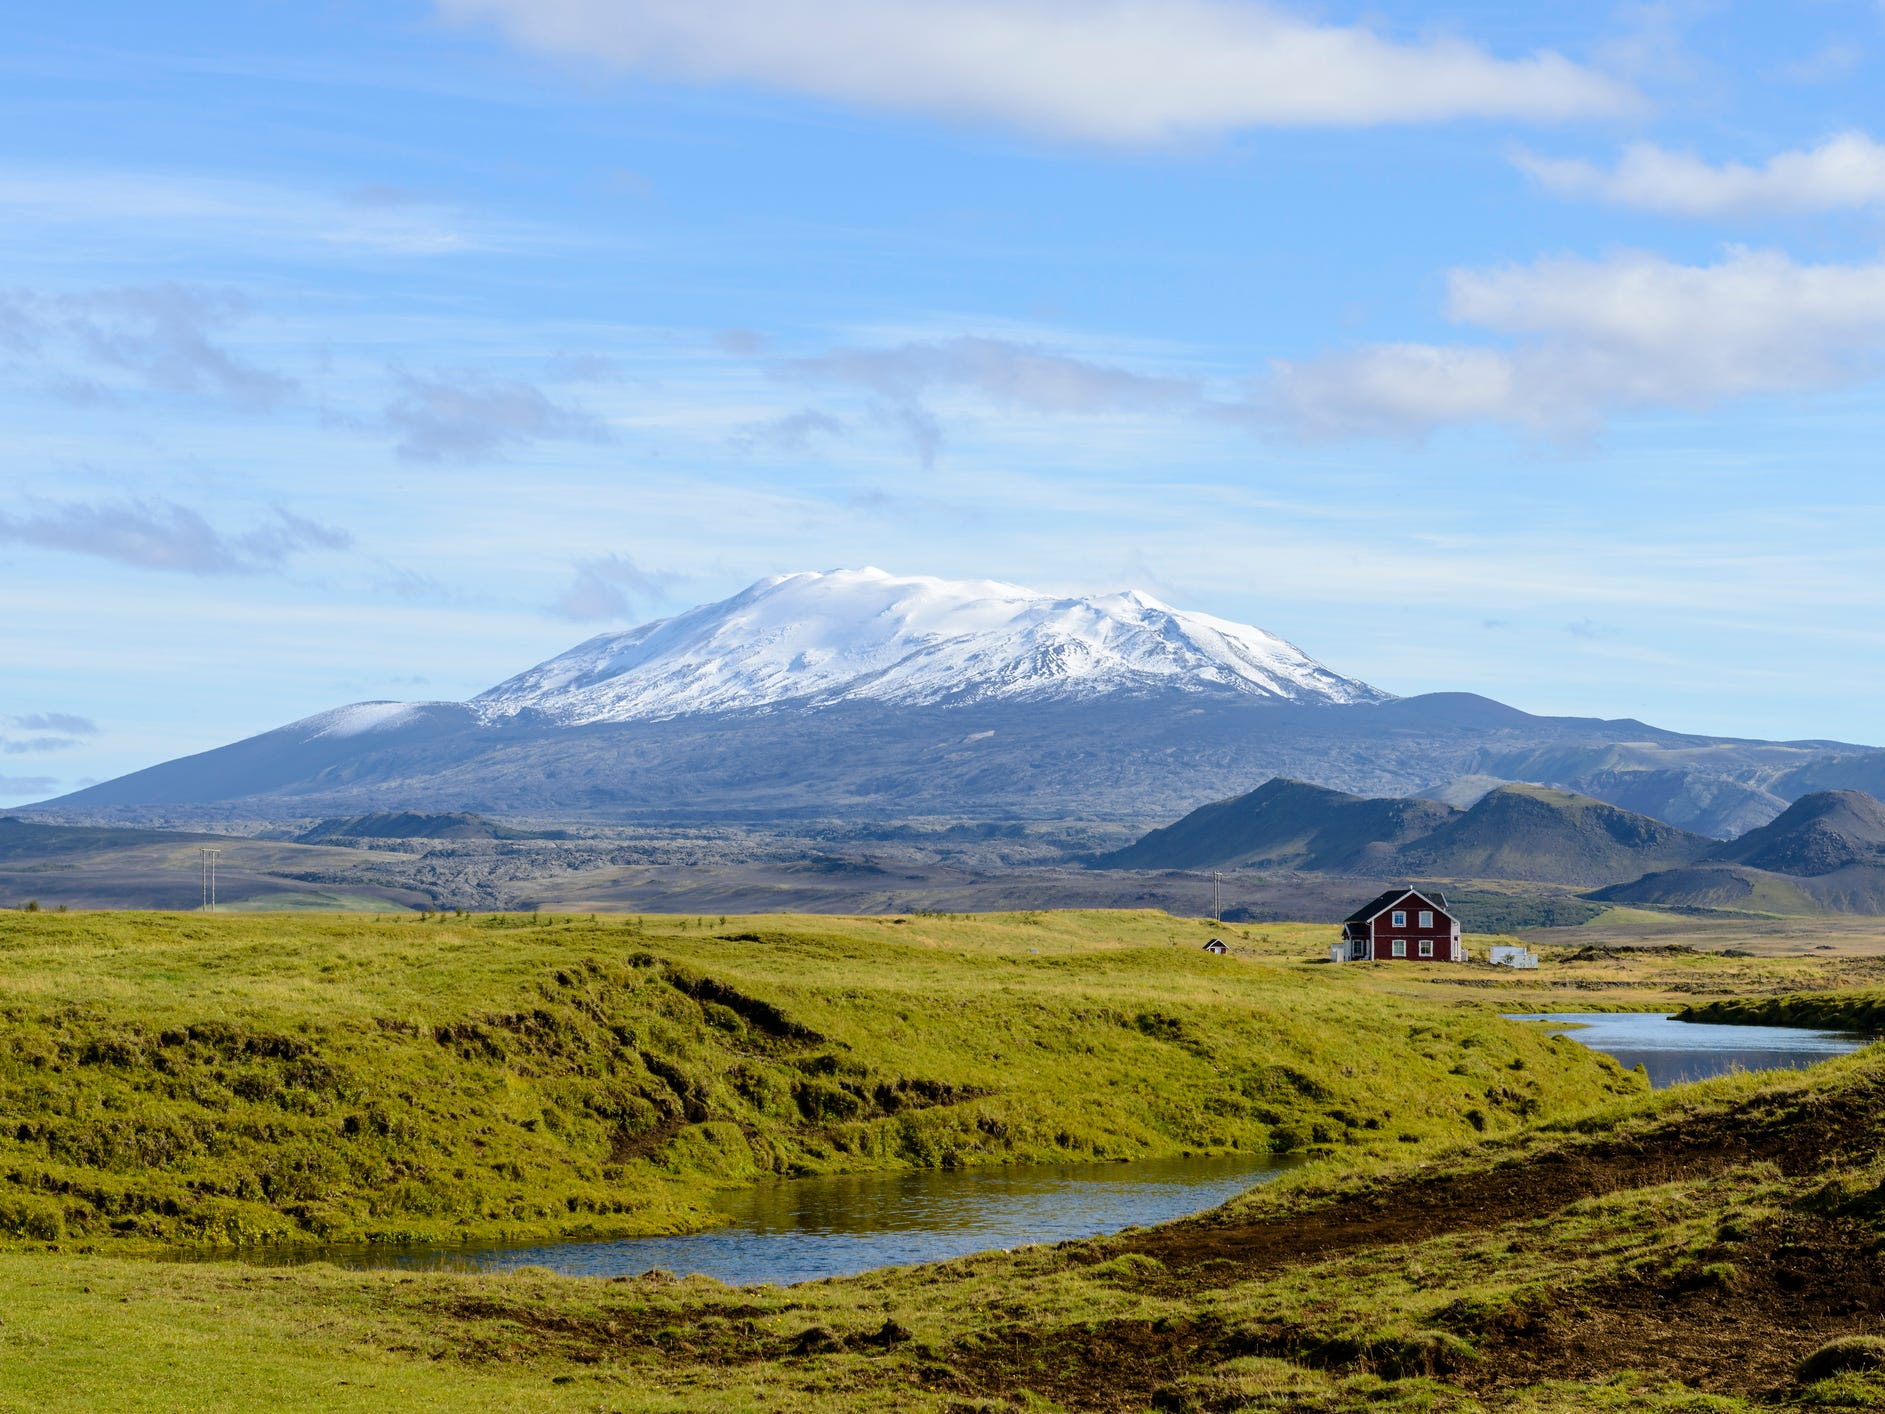 The Hekla volcano in Iceland.